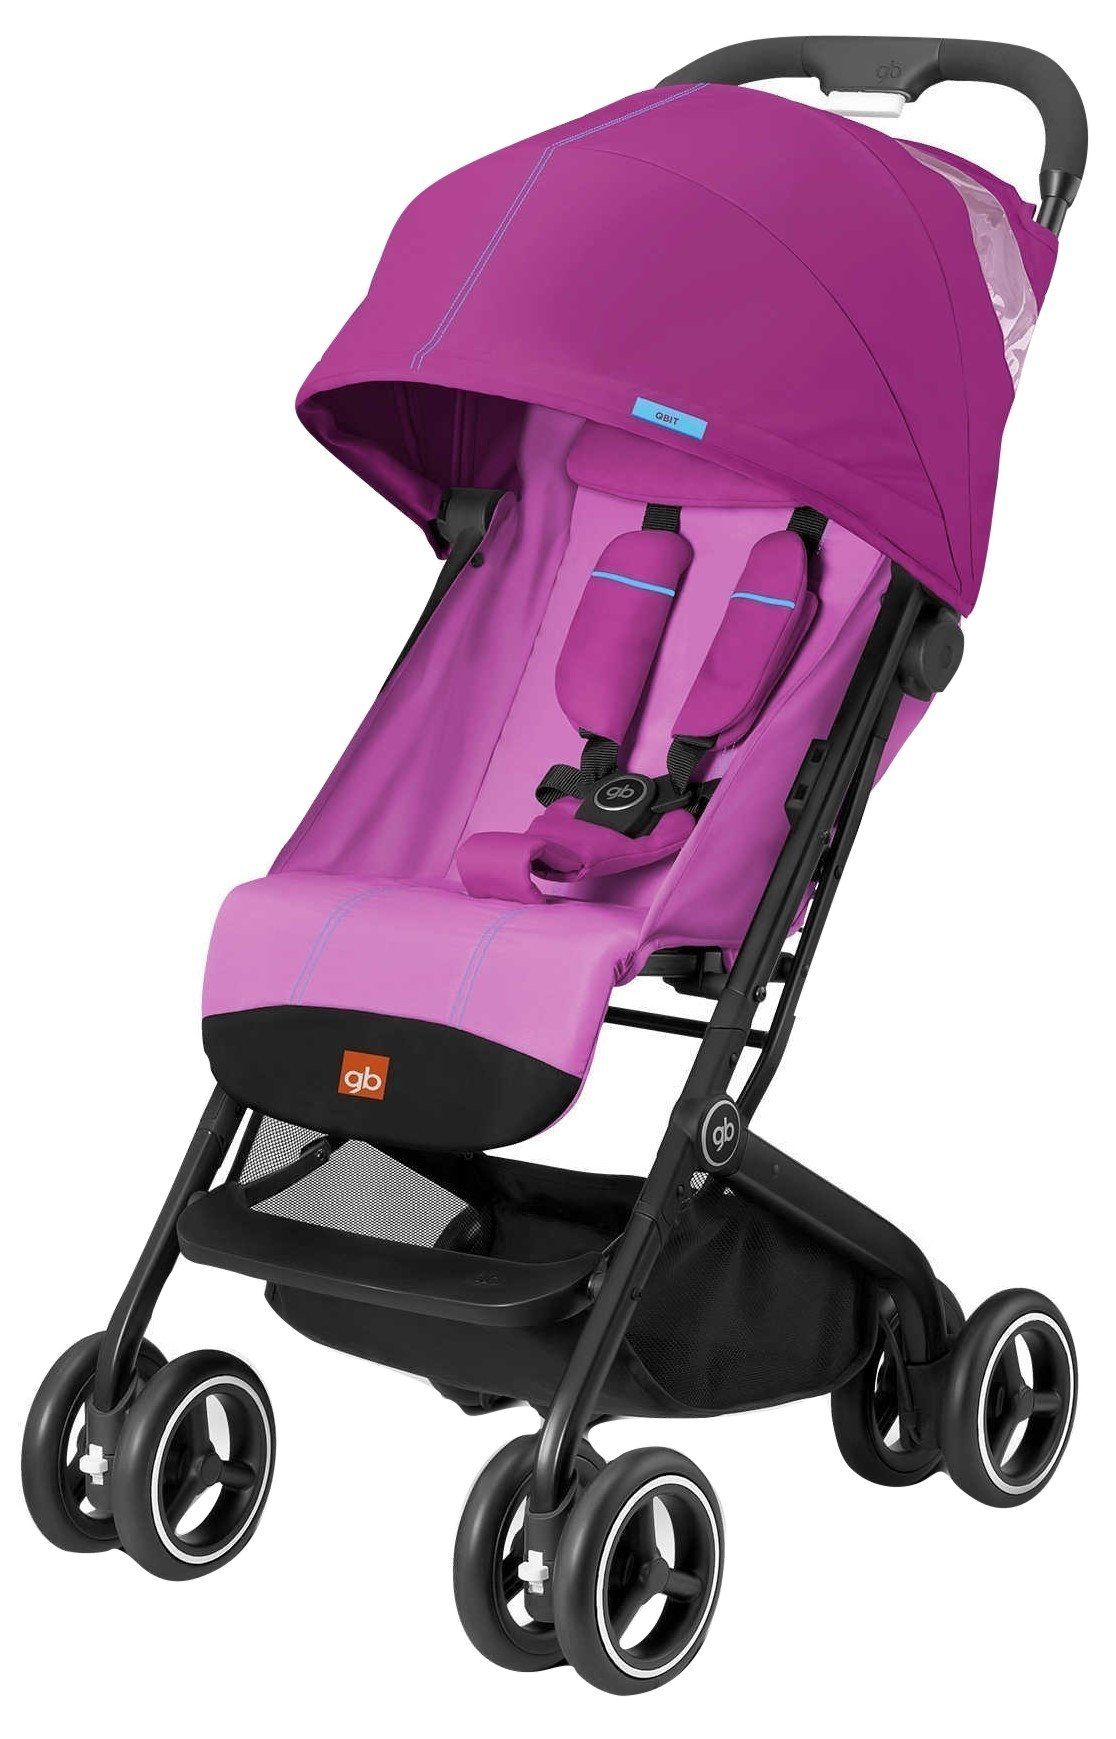 GB QBit Plus (Posh Pink) parents baby stroller pram